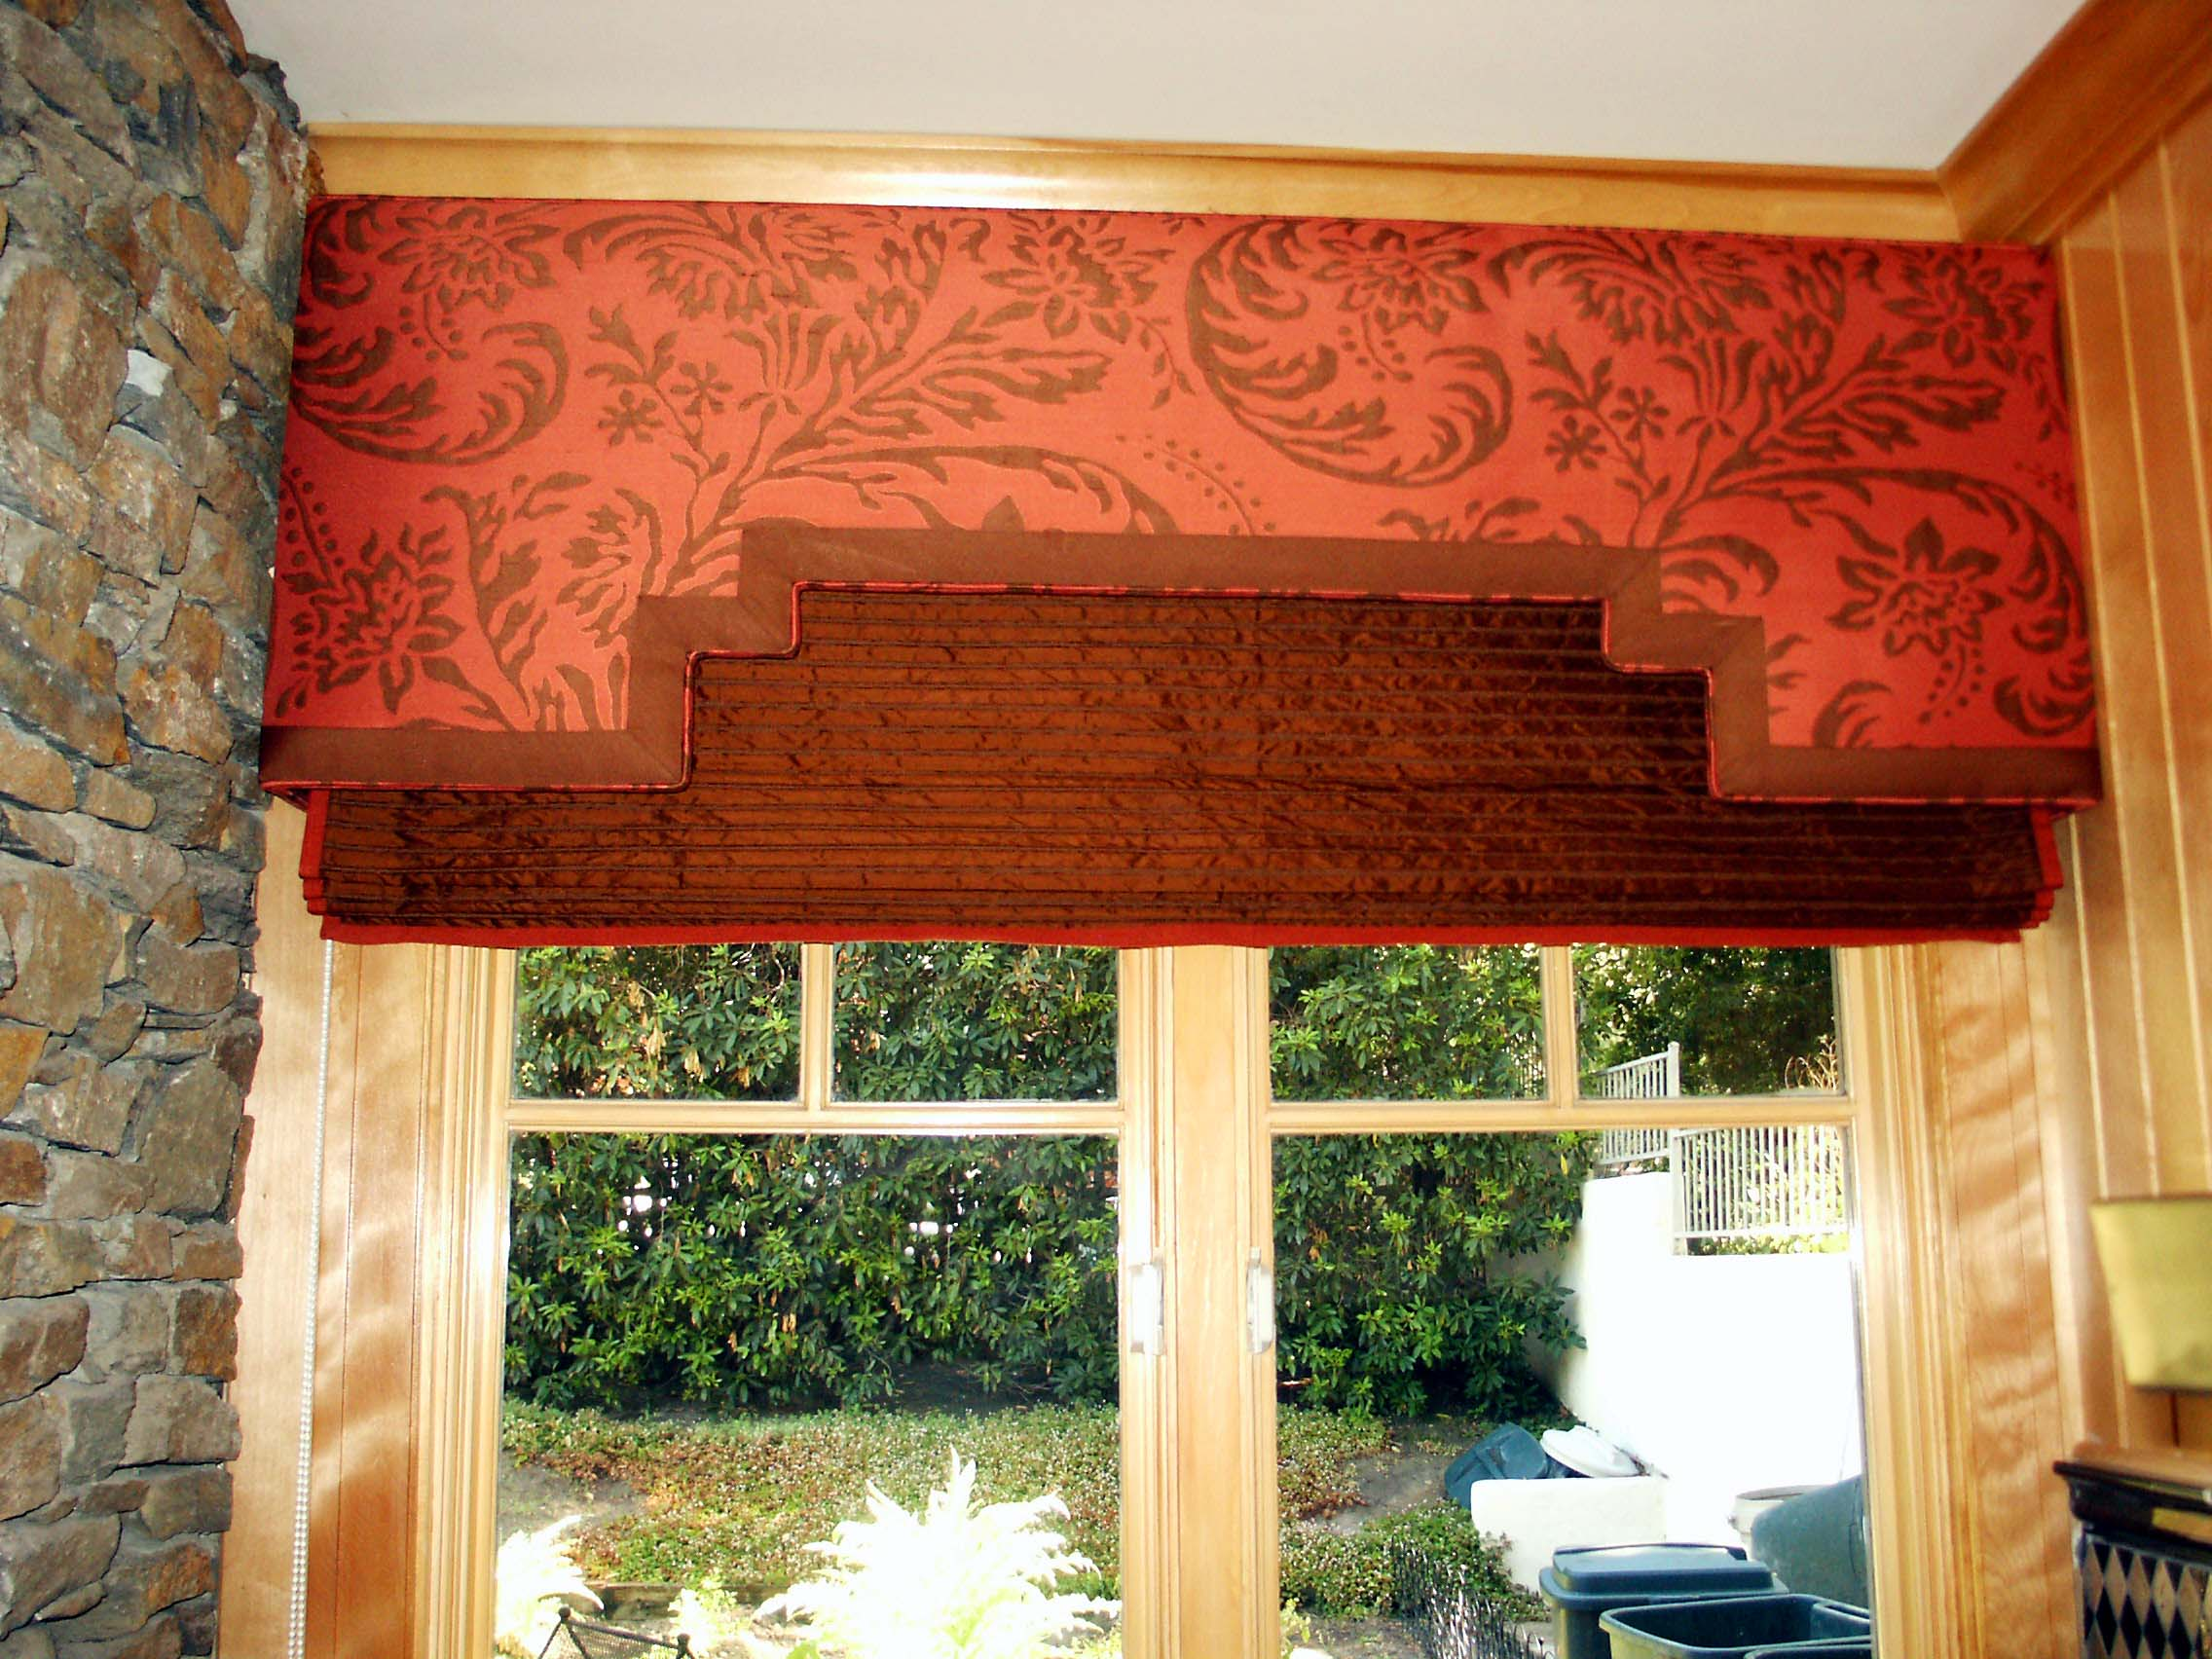 cornices window canopy designer s custom valance curtains and by member designers indiana touch valances draperies